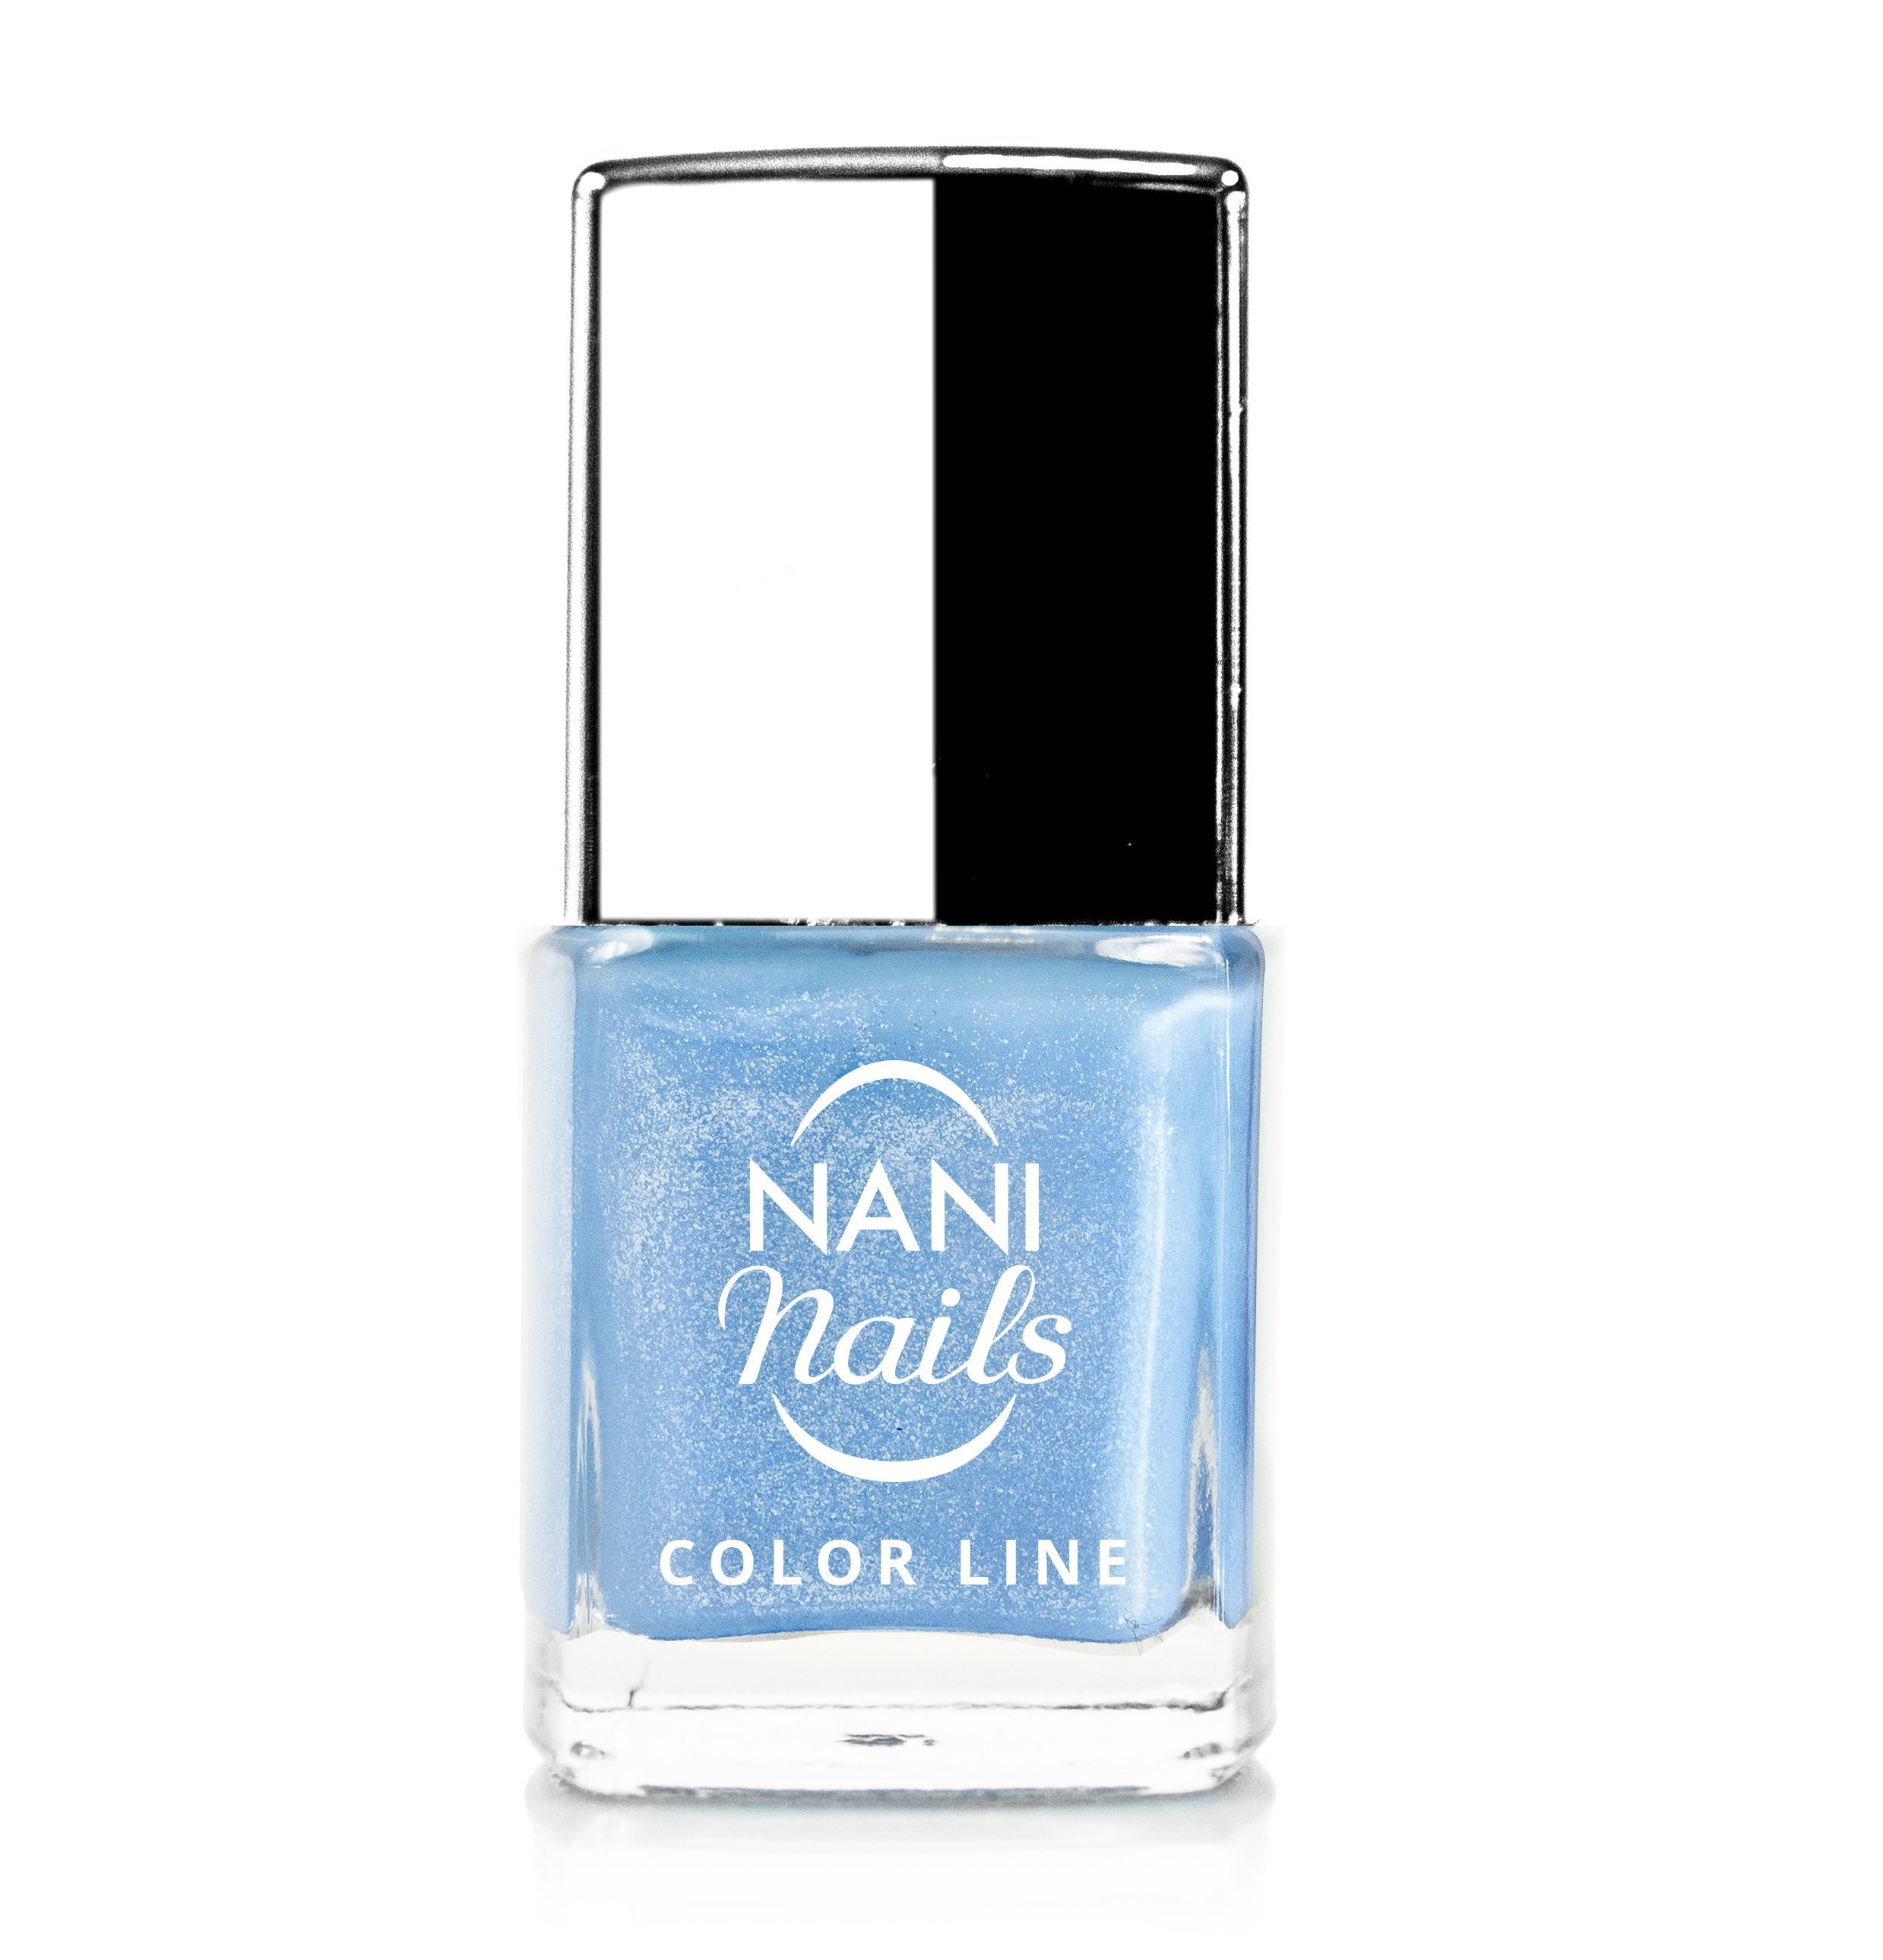 NANI lak Color Line 9 ml - 75